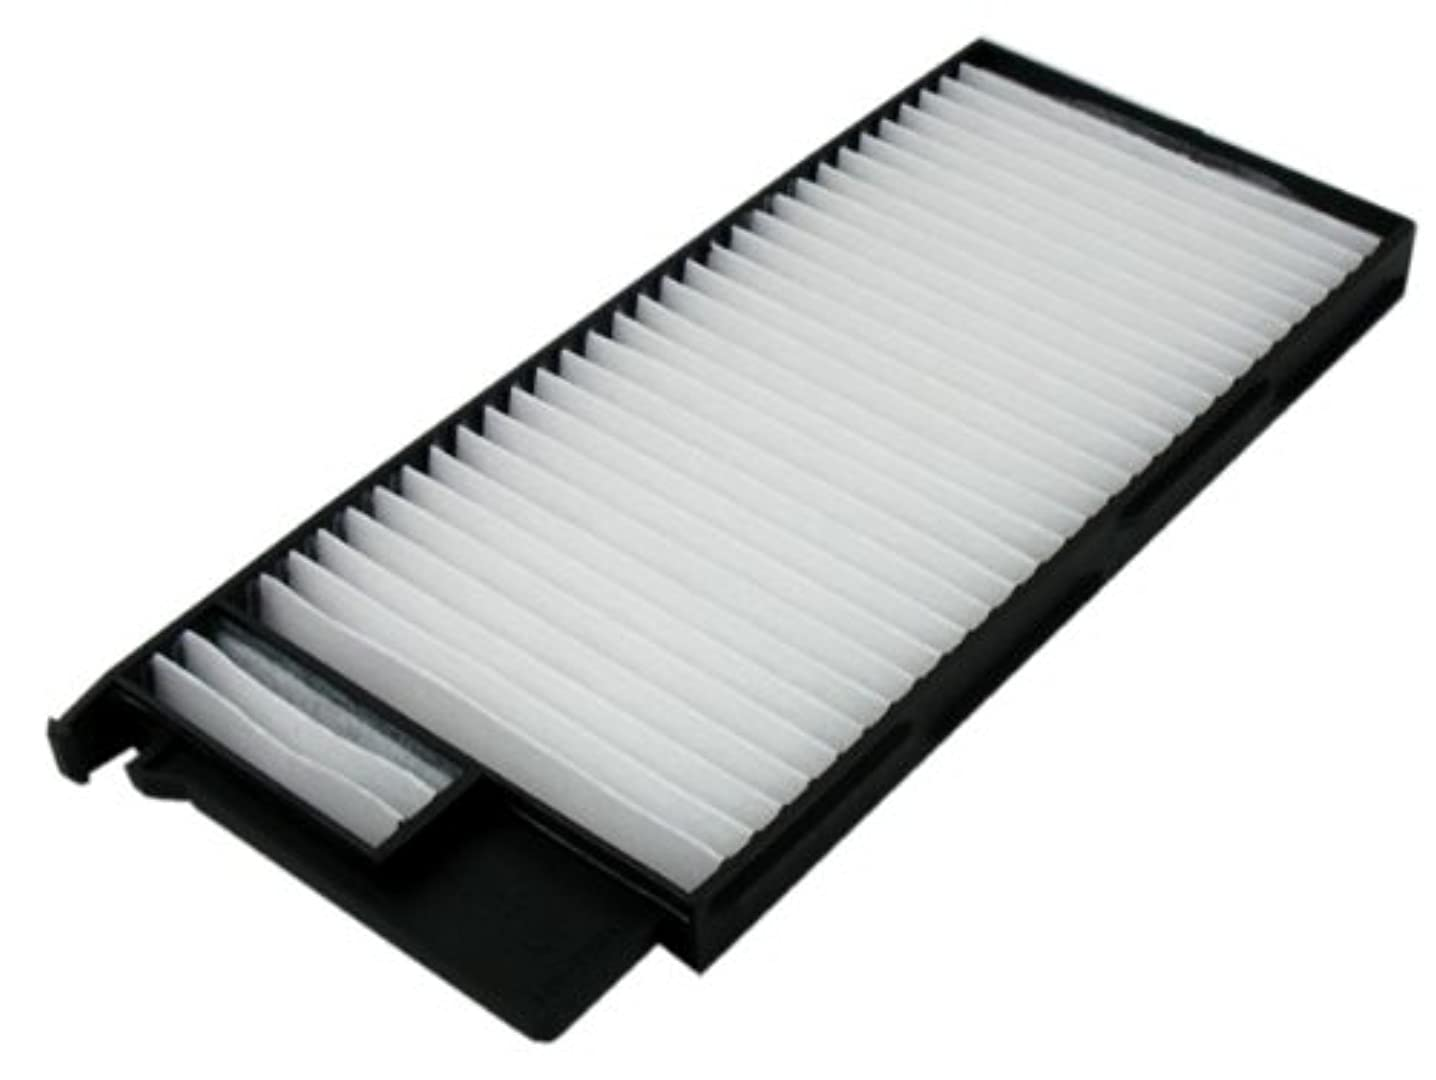 Pentius PHBT026 UltraFLOW Cabin Air Filter for LEXUS LX470(98-07), TOYOTA Land Cruiser(06-07)